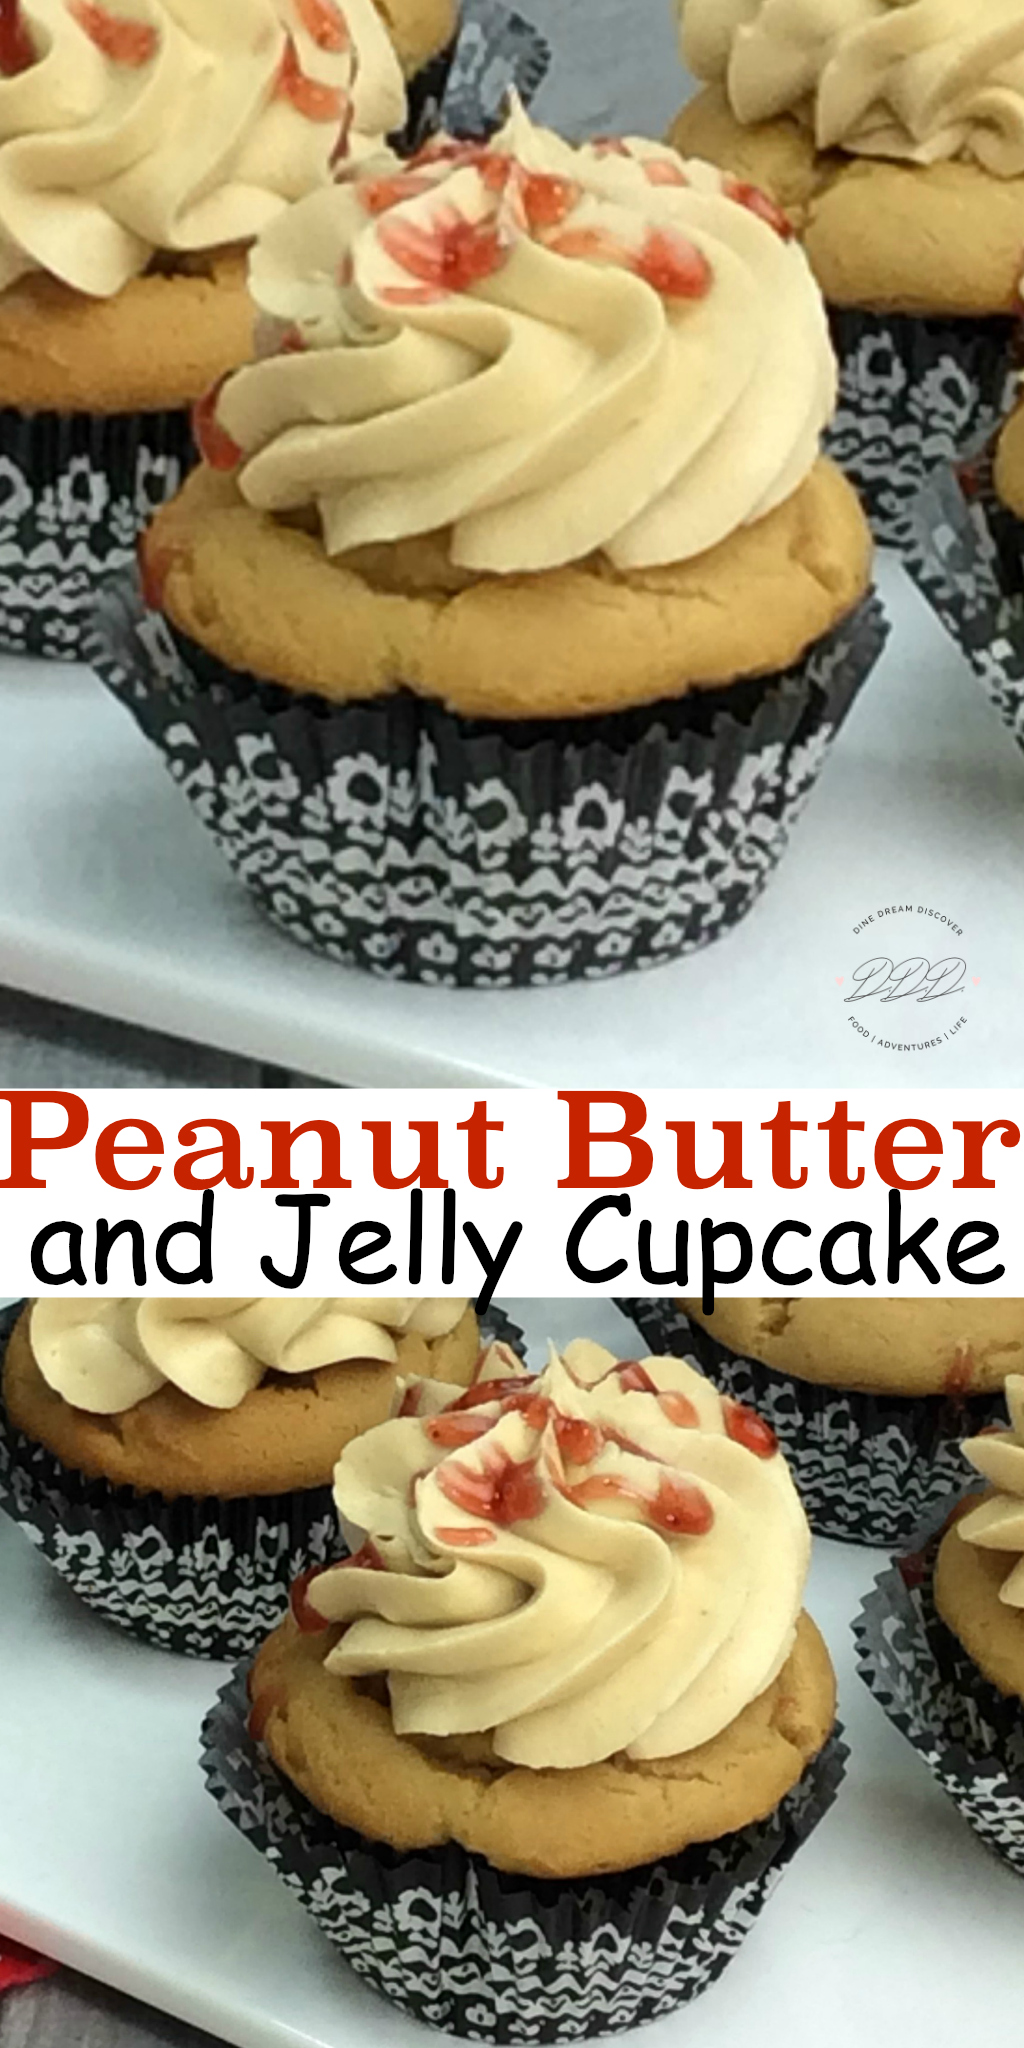 Peanut Butter and Jelly Cupcake takes a childhood classic is a rich and delicious jelly filled cupcake and peanut butter frosting for National PB&J Day.